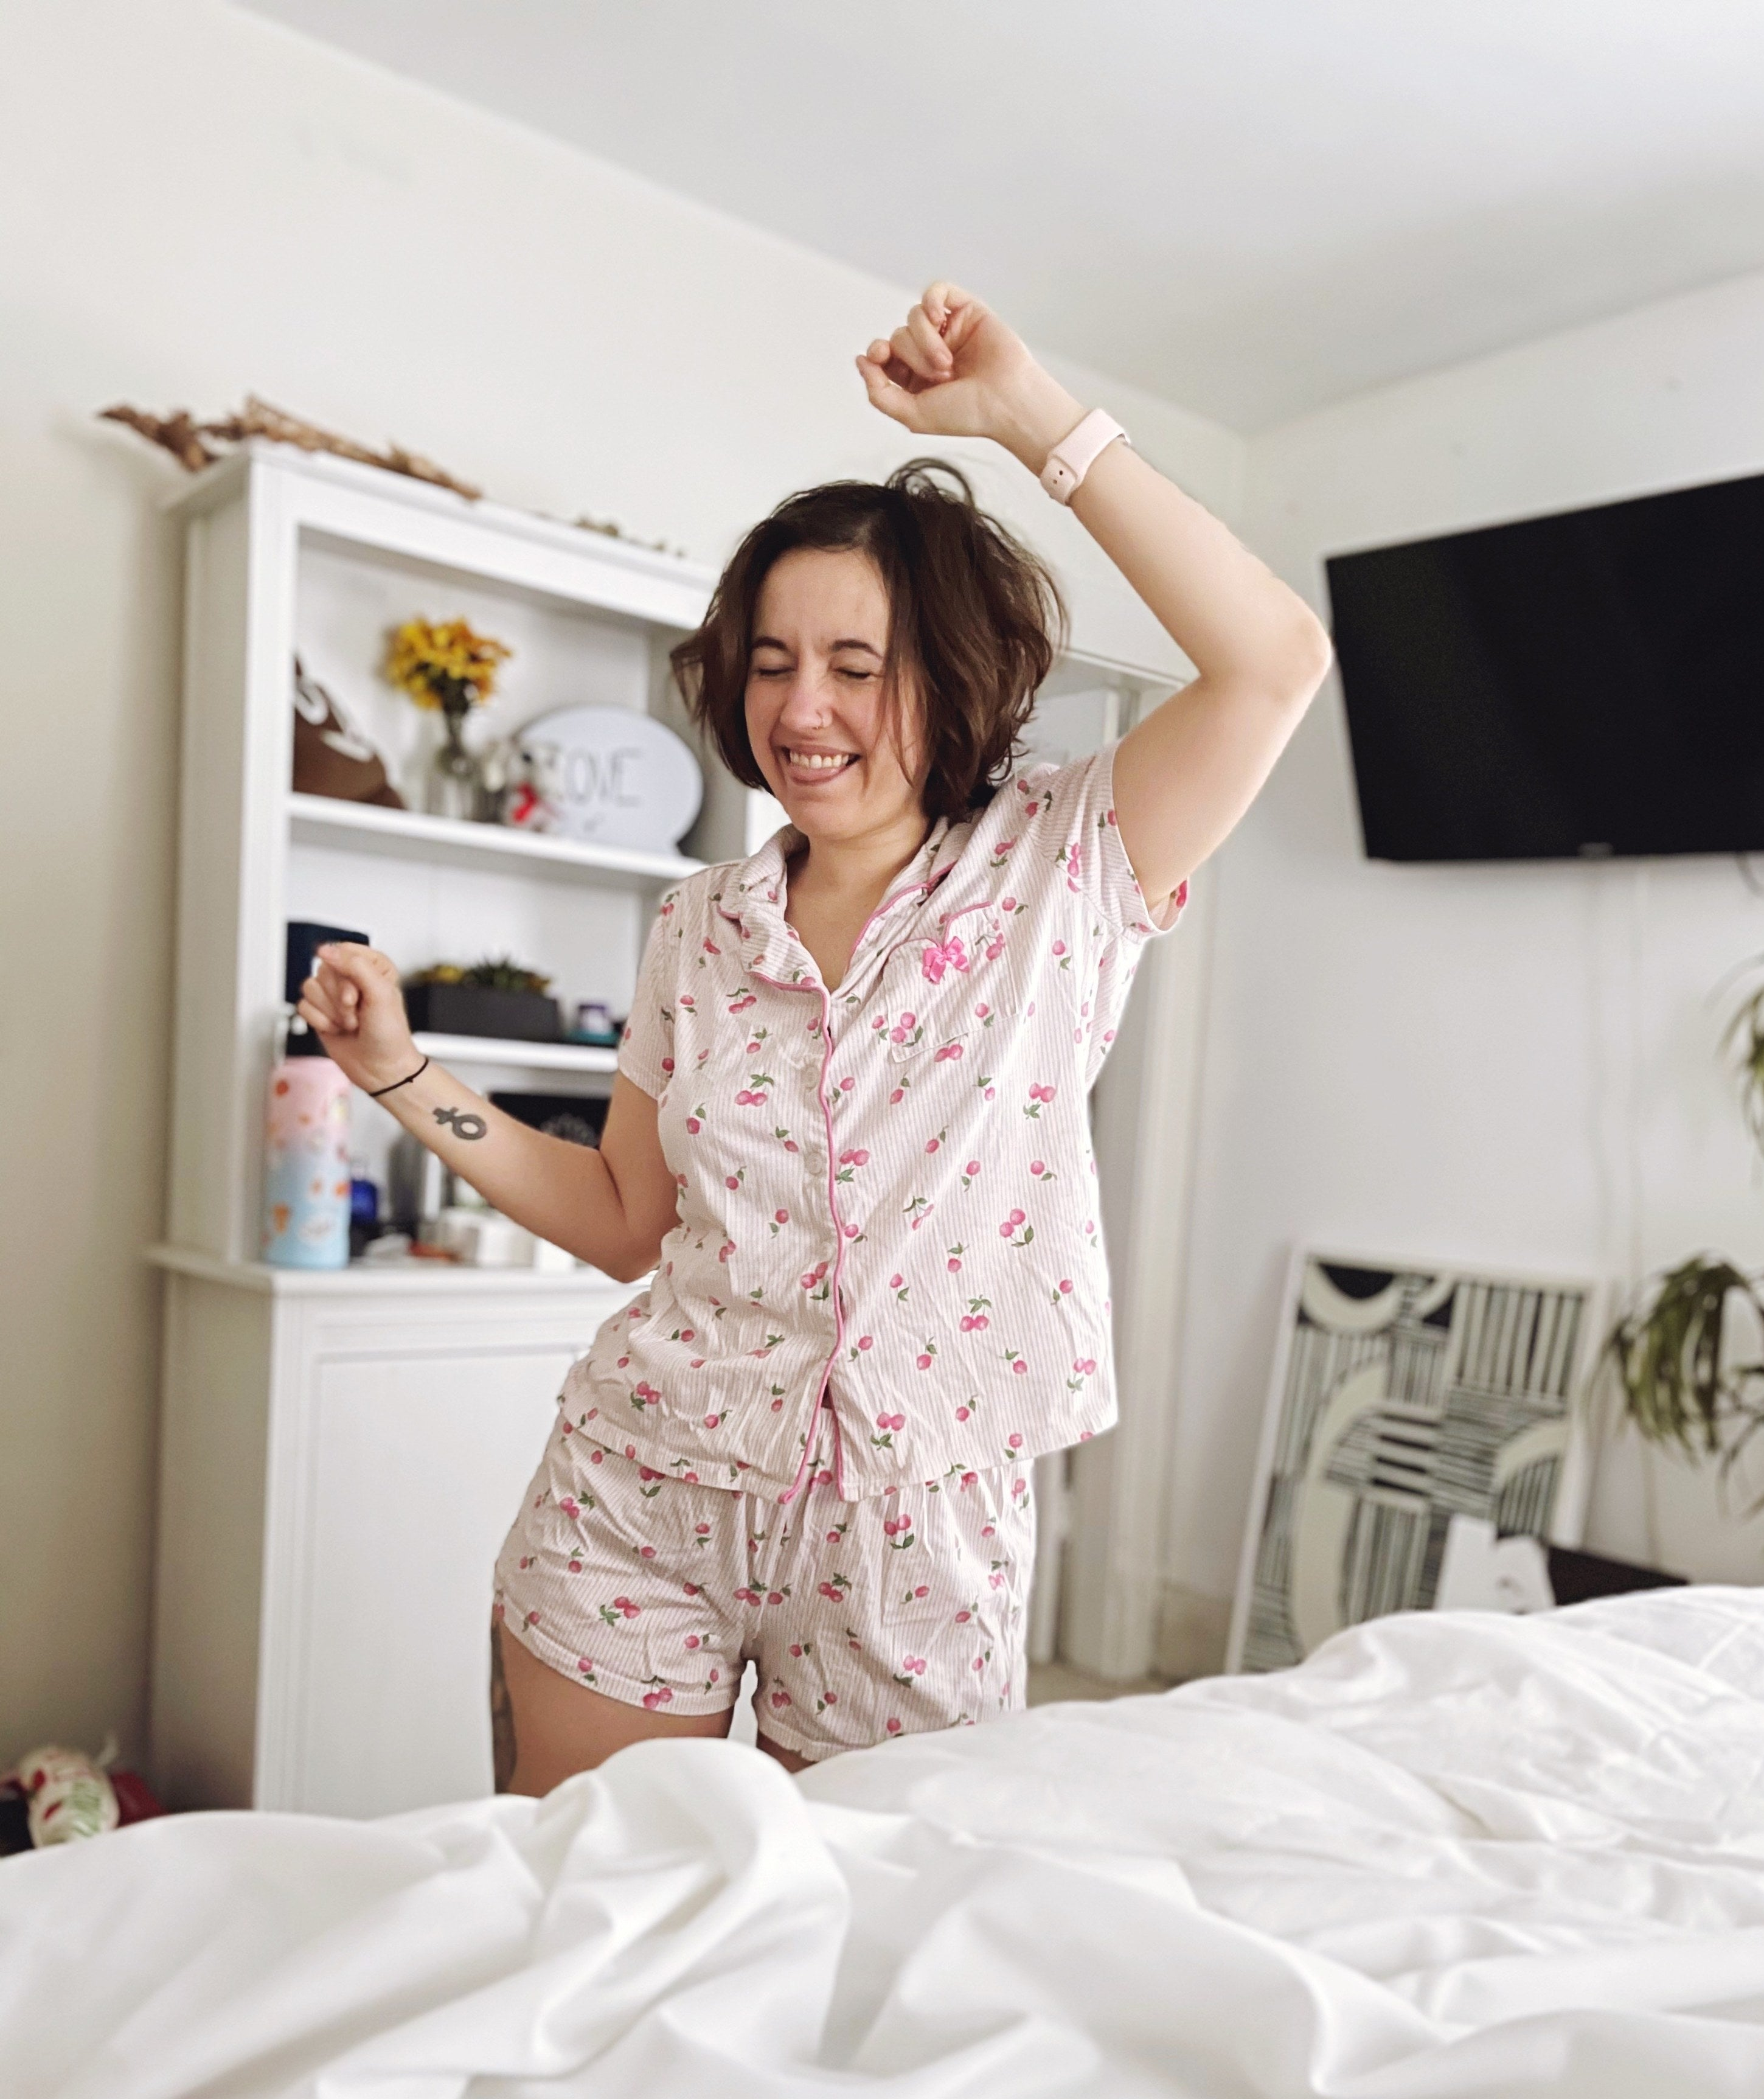 Person is dancing next to a bed